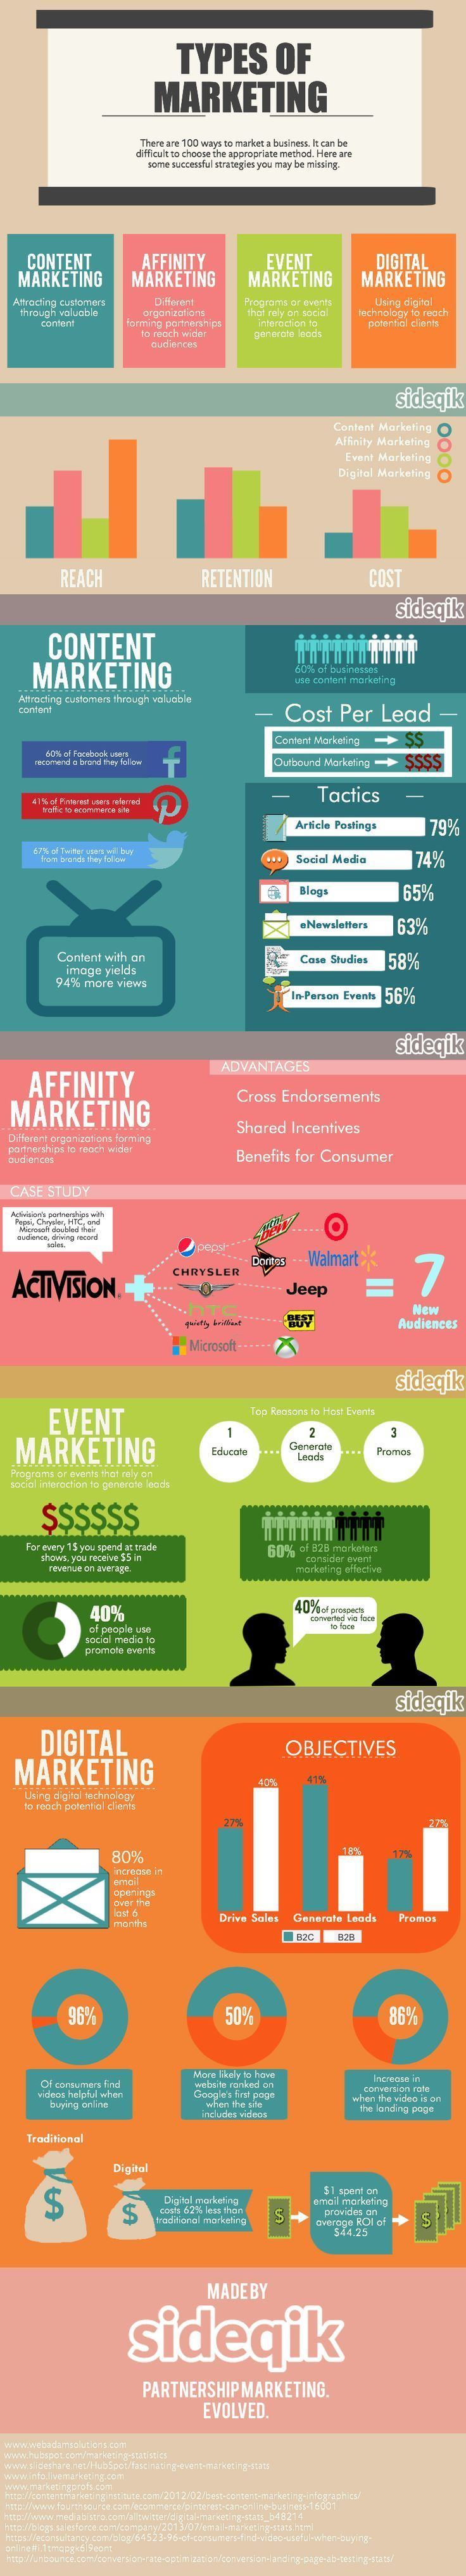 Need a new marketing strategy? We provided info on some hot types of marketing…